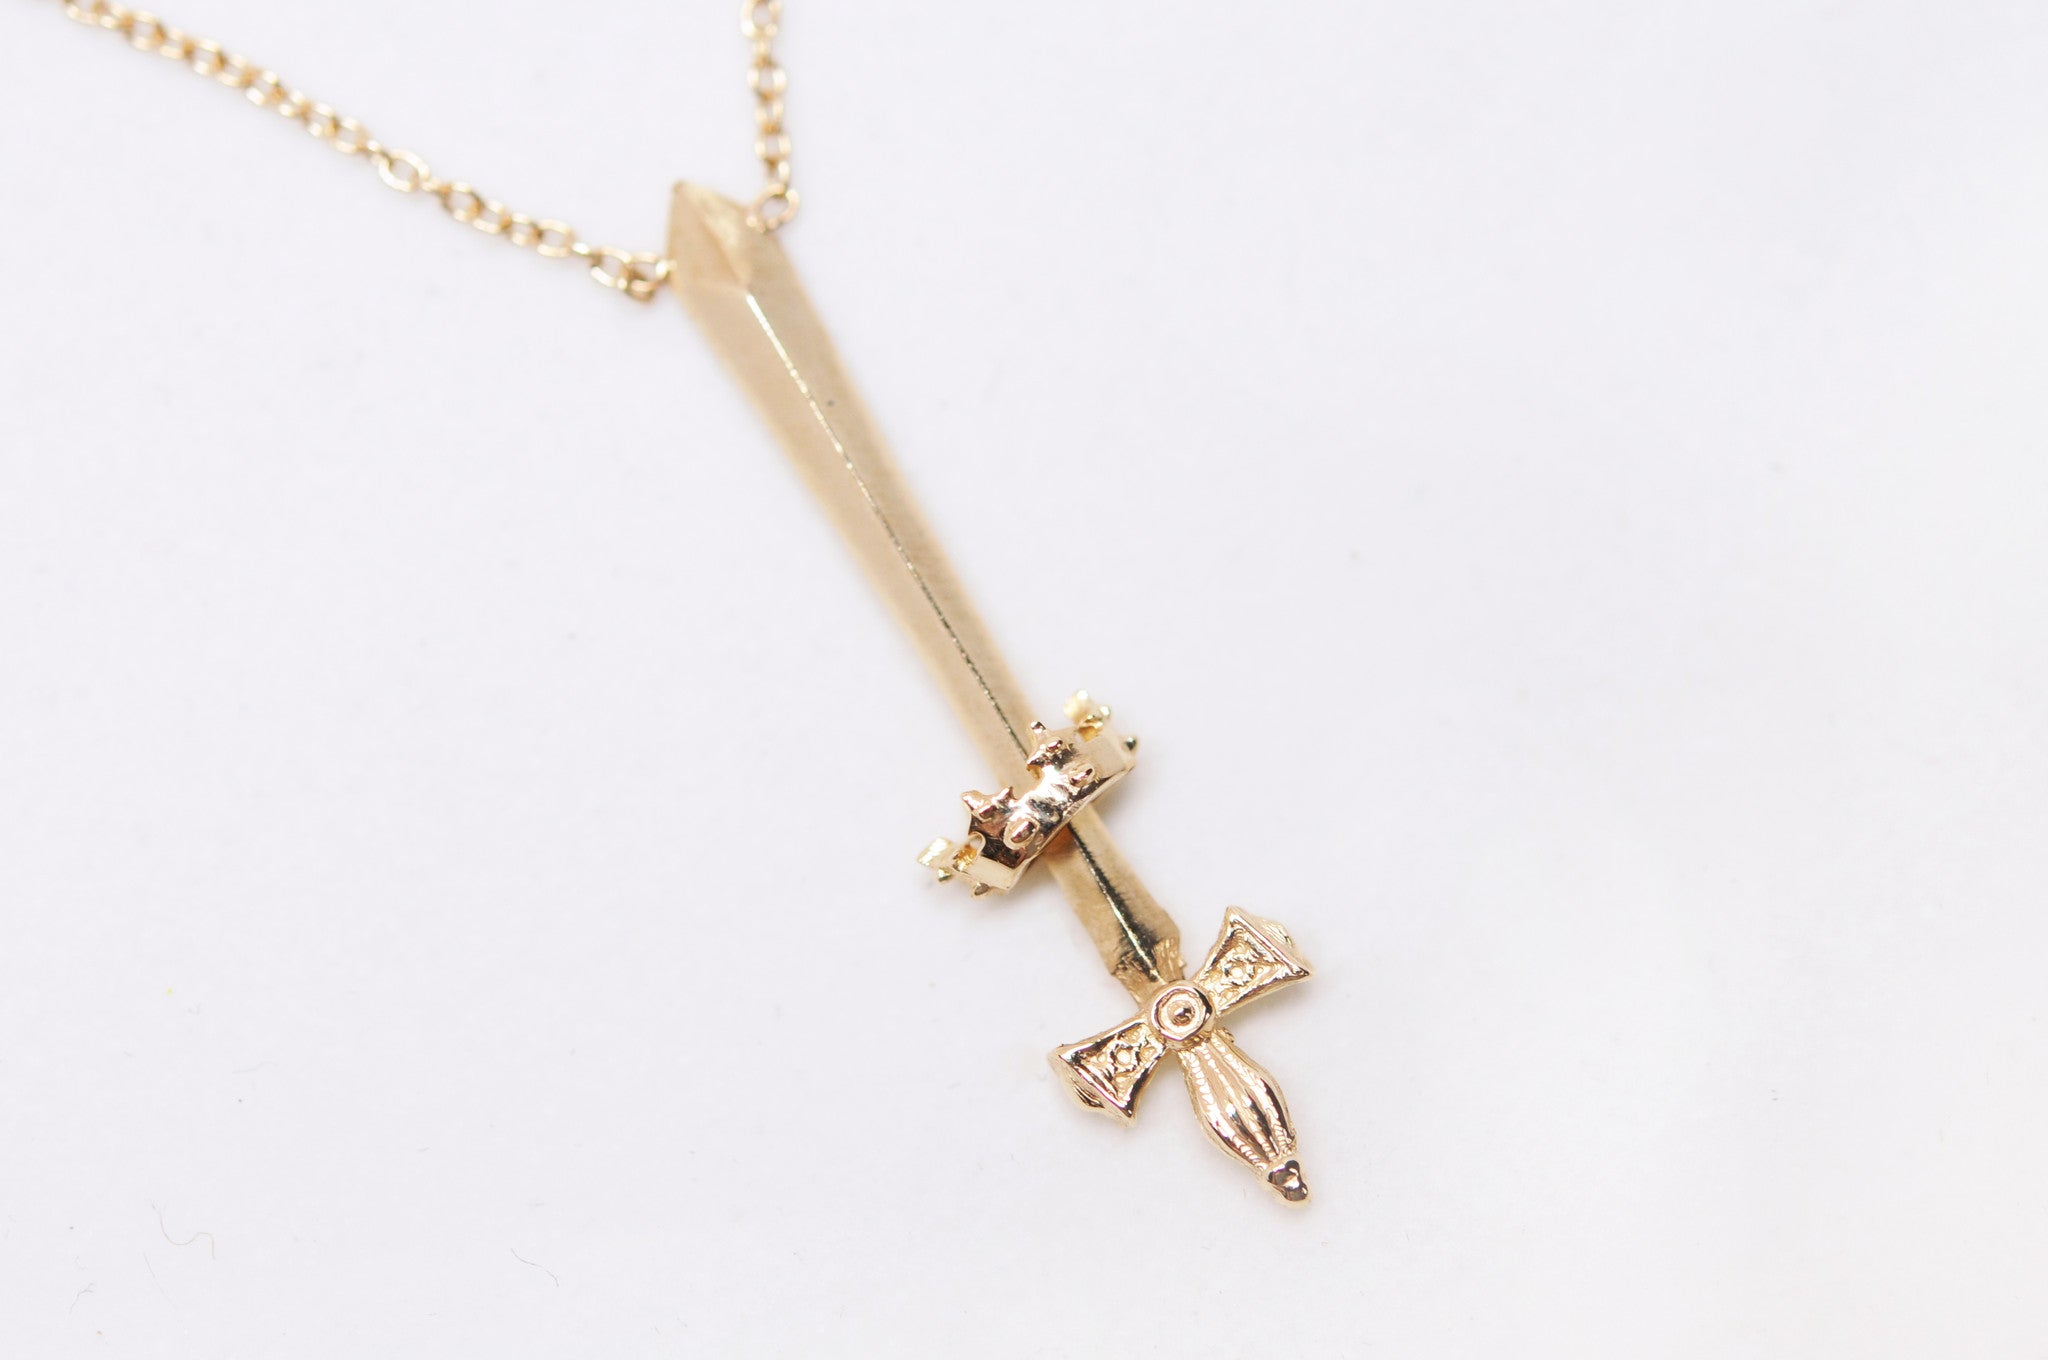 New Uk Seller Sword Necklace With Cord /& Chain